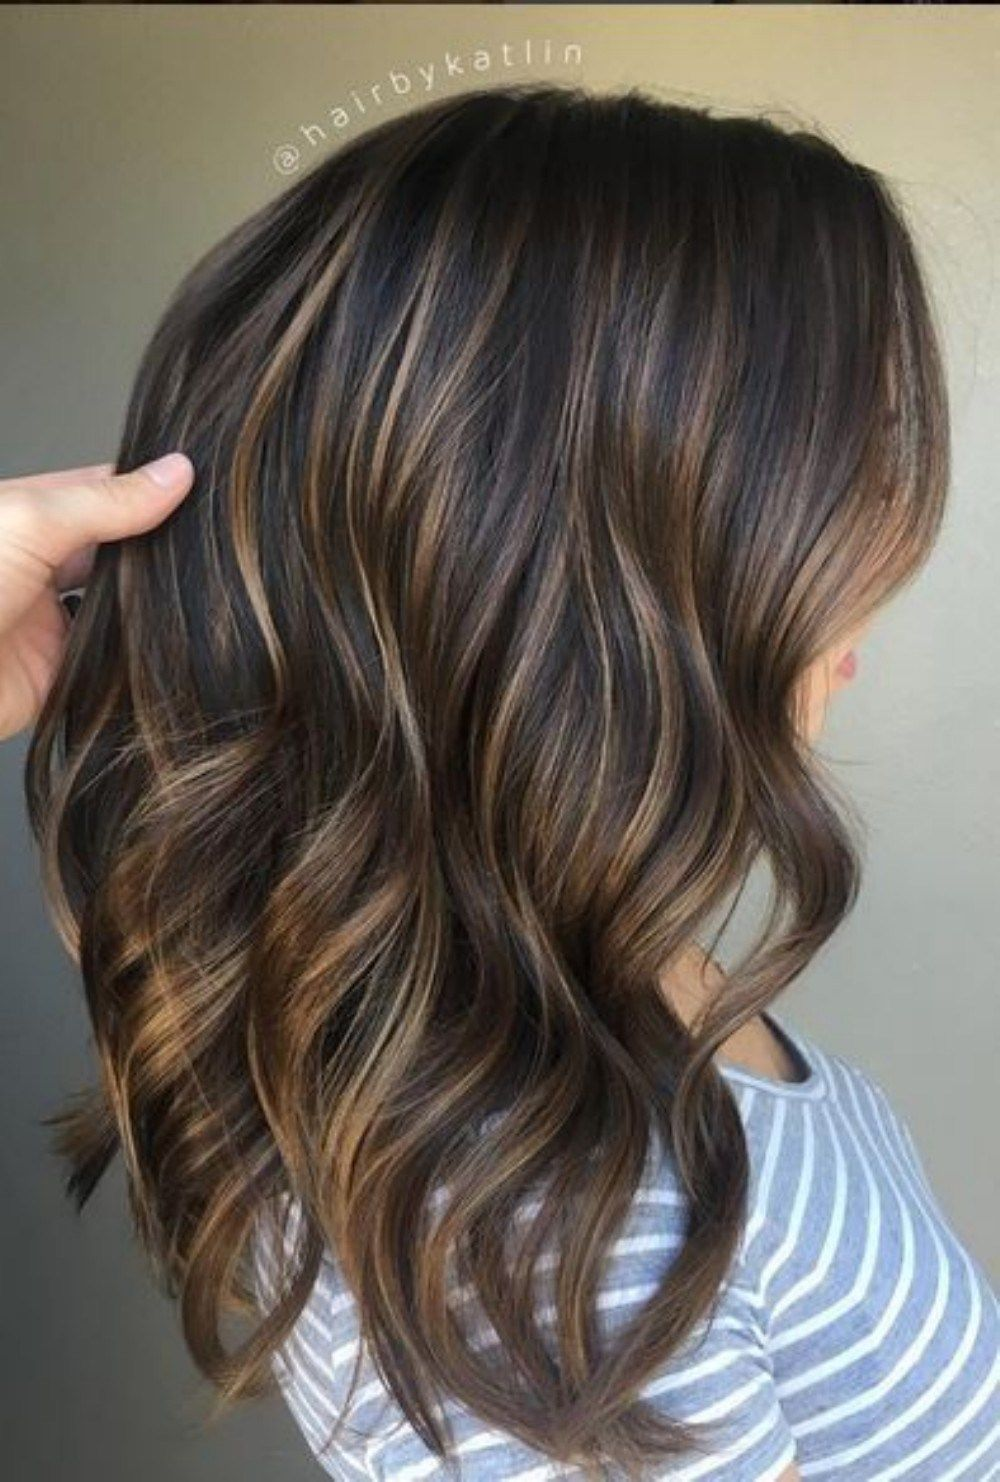 Top brunette hair color ideas to try 2017 (17) | Hairstyle ...